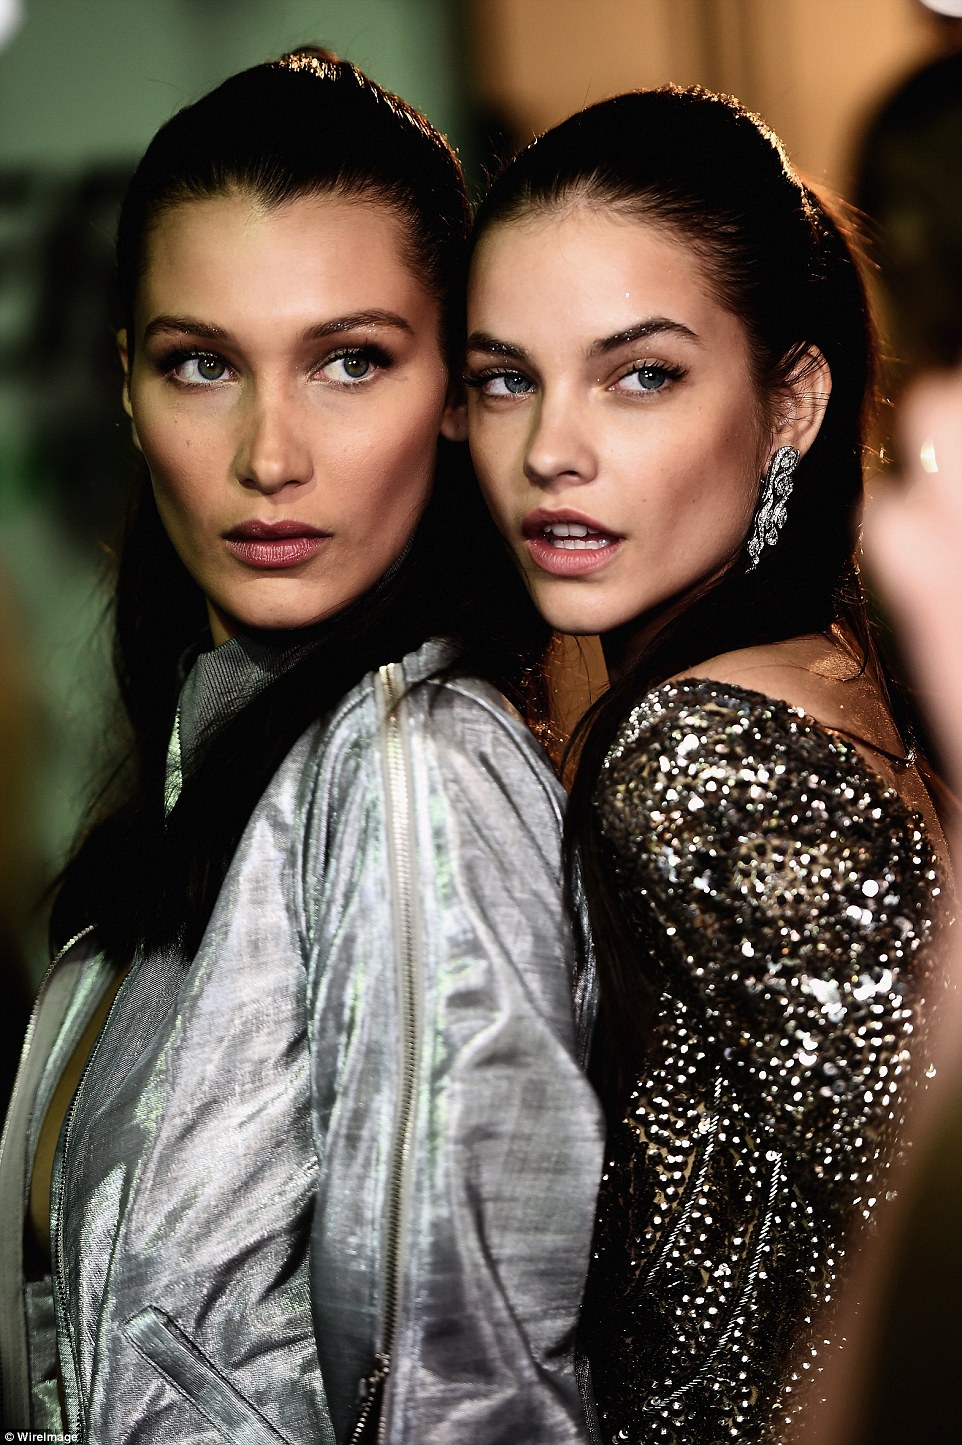 Intense gaze: Bella and Barbara could have passed for sisters in a number of candid images